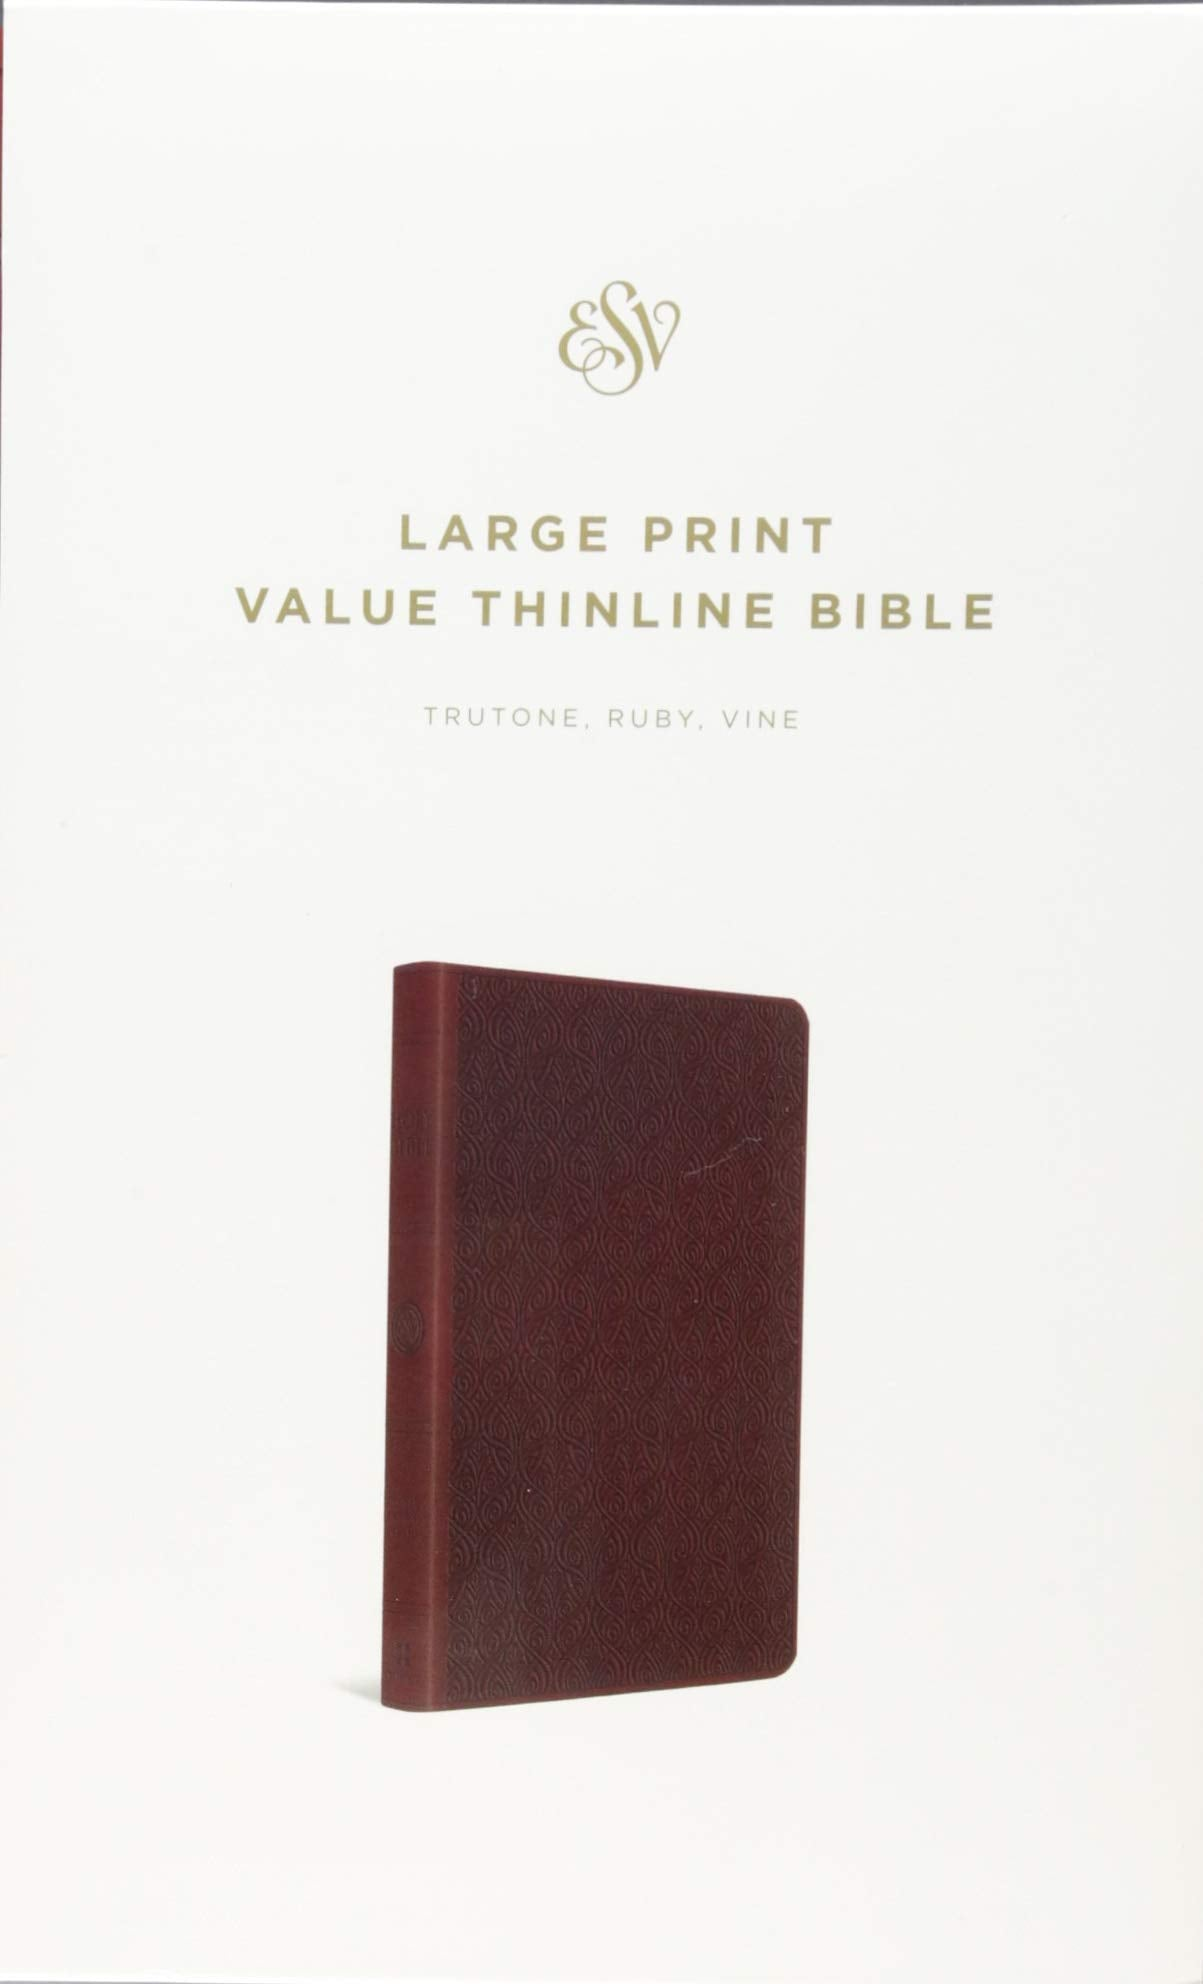 ROCKONLINE | New Creation Church | NCC | Joseph Prince | ROCK Bookshop | ROCK Bookstore | Star Vista | Christian Living | ESV Large Print Value Thinline Bible, TruTone, Ruby, Vine | Free delivery for Singapore Orders above $50.